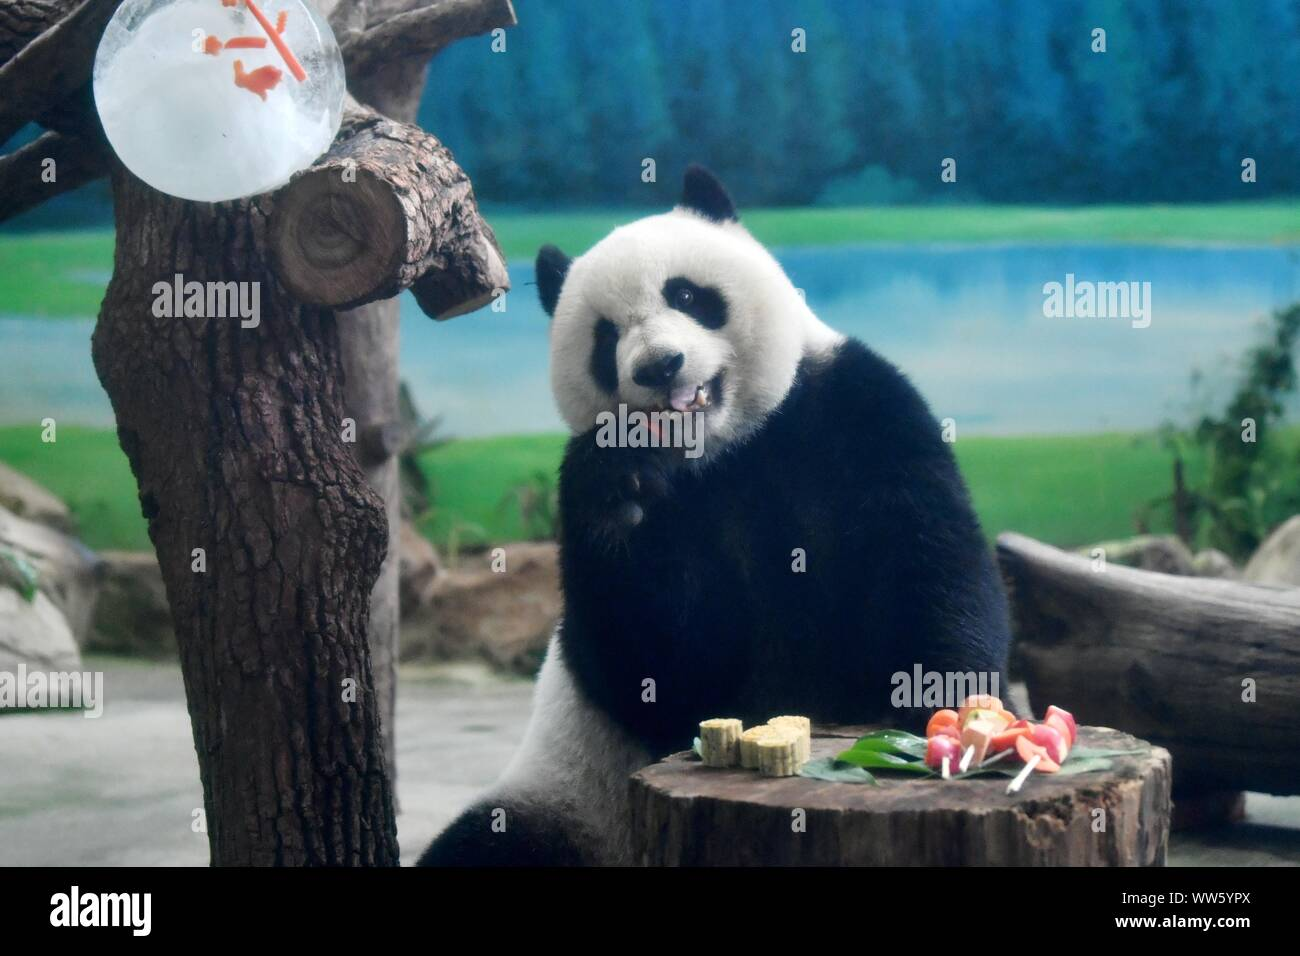 Taipei's Taiwan. 13th Sep, 2019. Giant panda Yuanzai eats skewered fruits and vegetables at Taipei Zoo in Taipei, southeast China's Taiwan, Sept. 13, 2019. Mooncakes and skewered fruits and vegetables were specially made by the staff of Taipei Zoo for giant pandas to celebrate the the Mid-Autumn Festival. Credit: Chen Bin/Xinhua/Alamy Live News Stock Photo